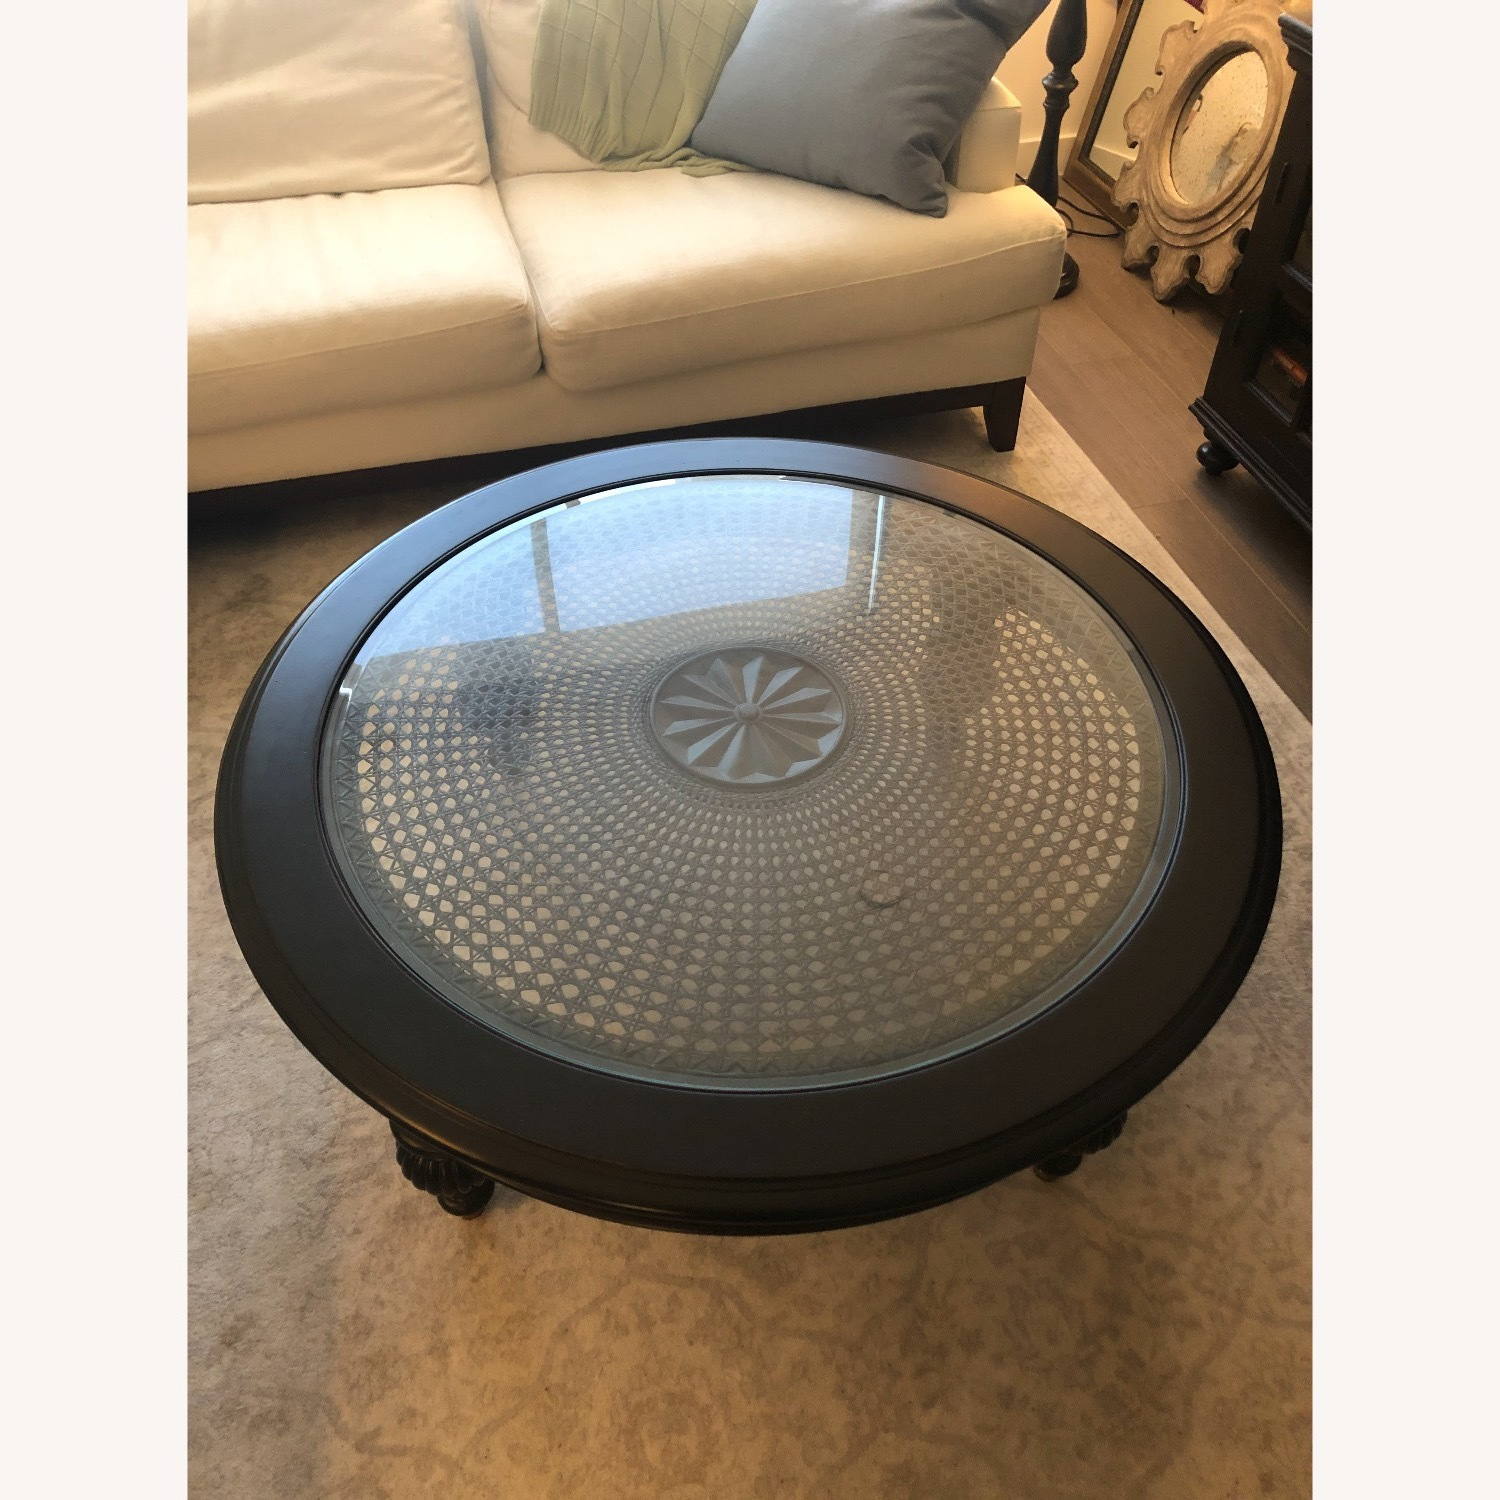 Ethan Allen Maya Round Coffee Table in Peppercorn - image-3